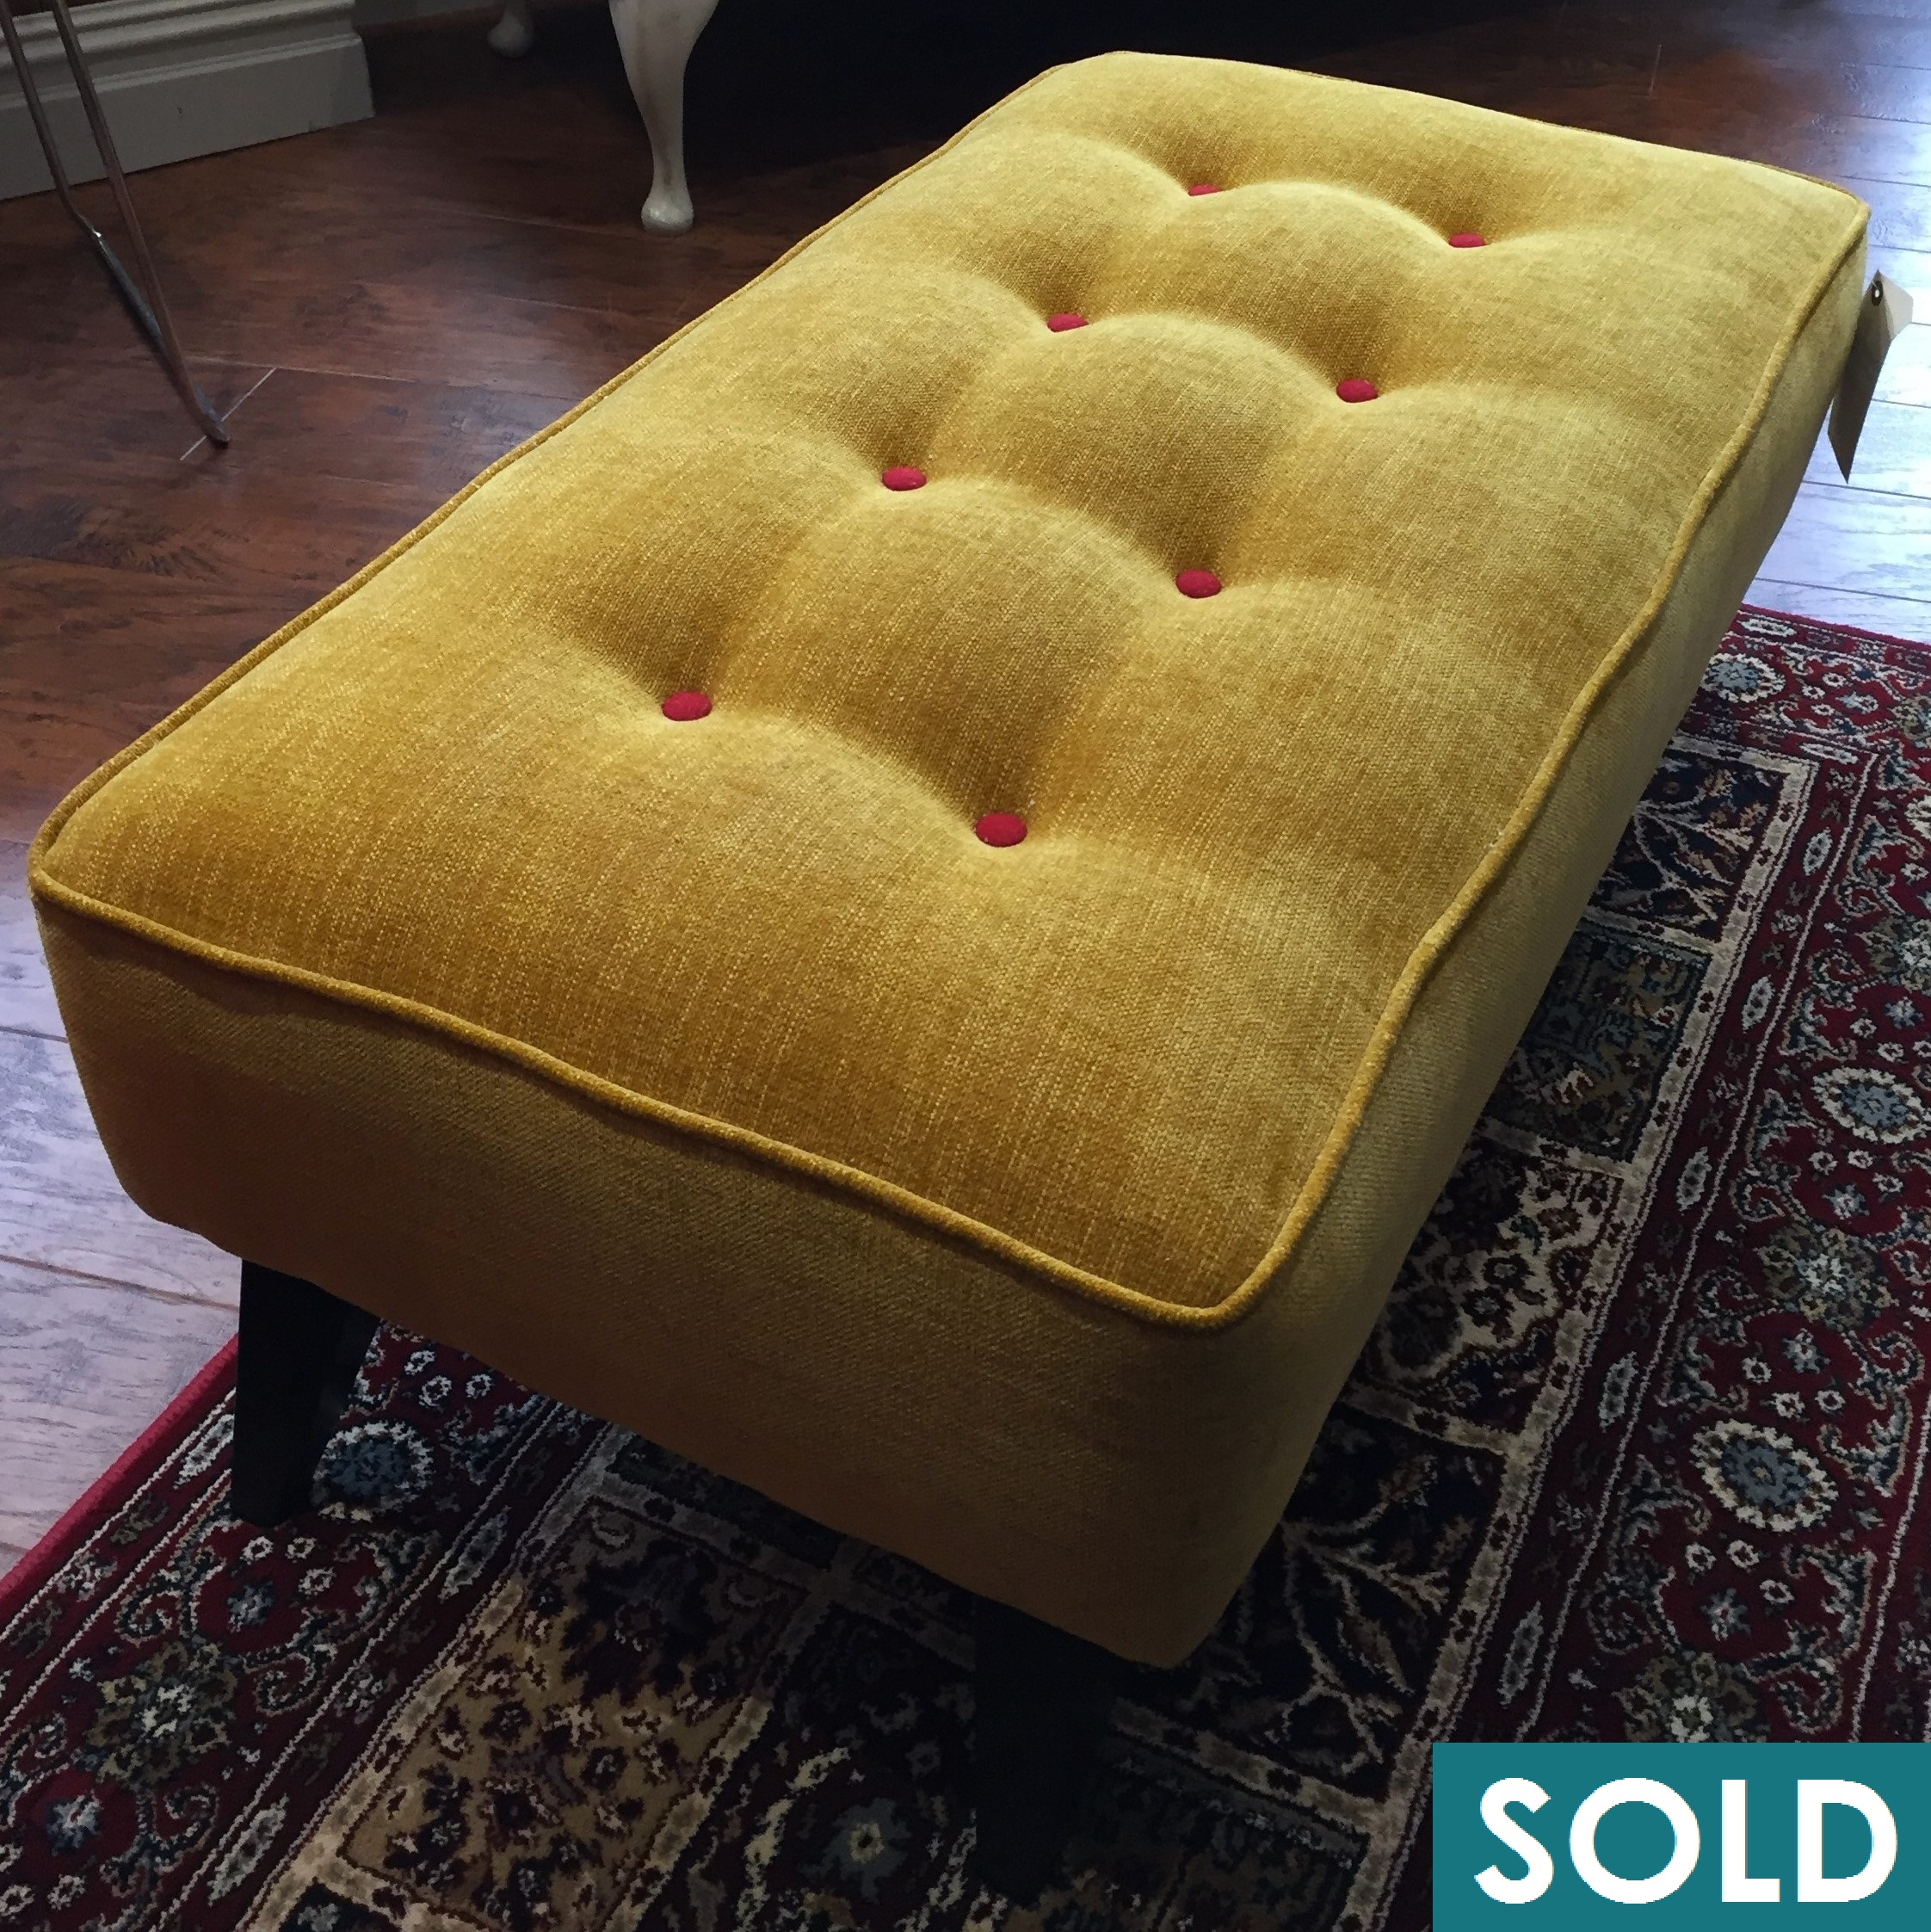 yellow footstool square sold